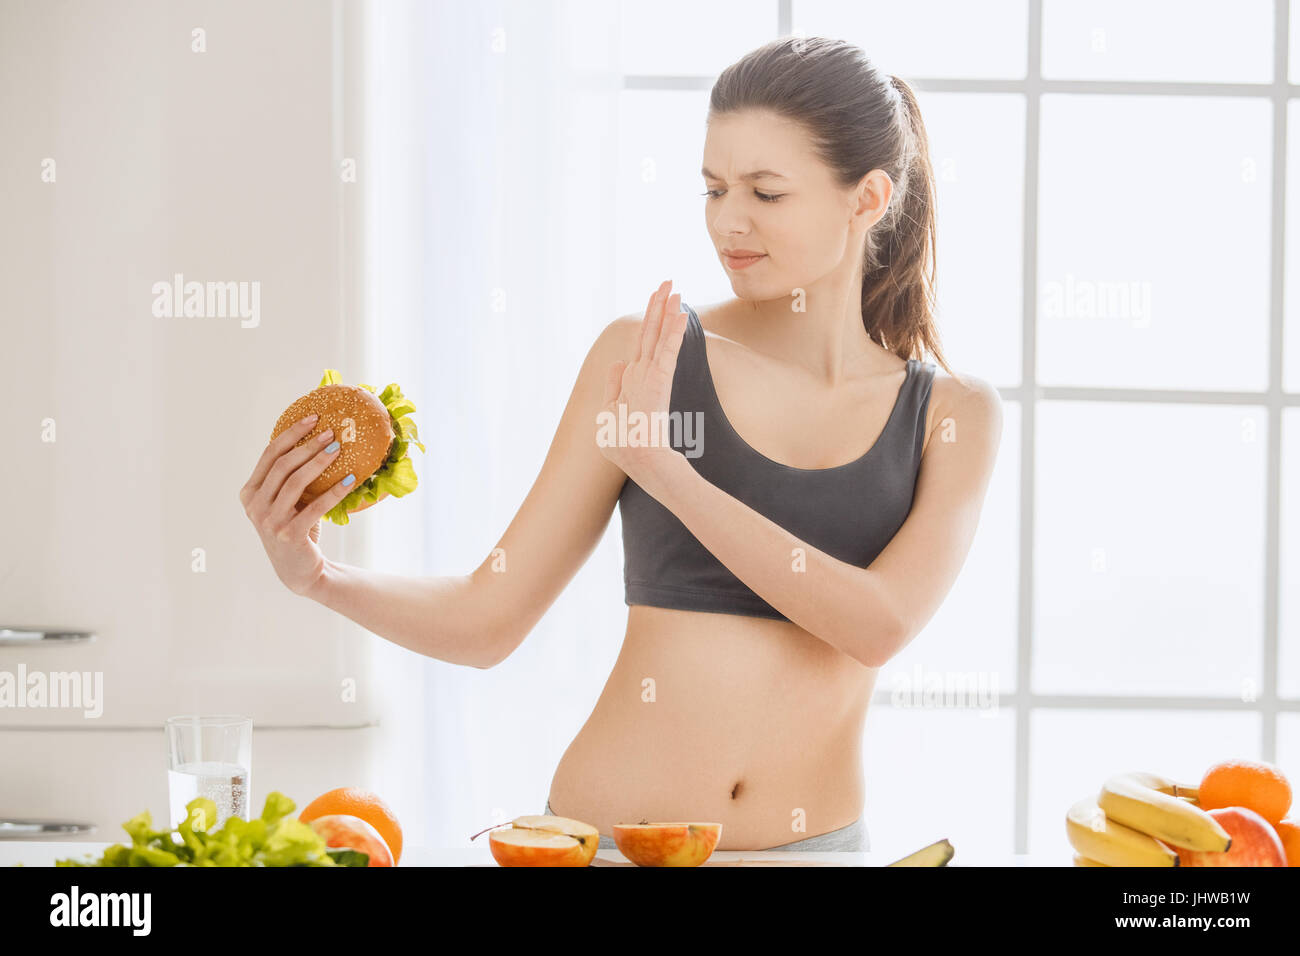 46066a2a33 Young woman weight loss perfect body shape Stock Photo  148689573 ...